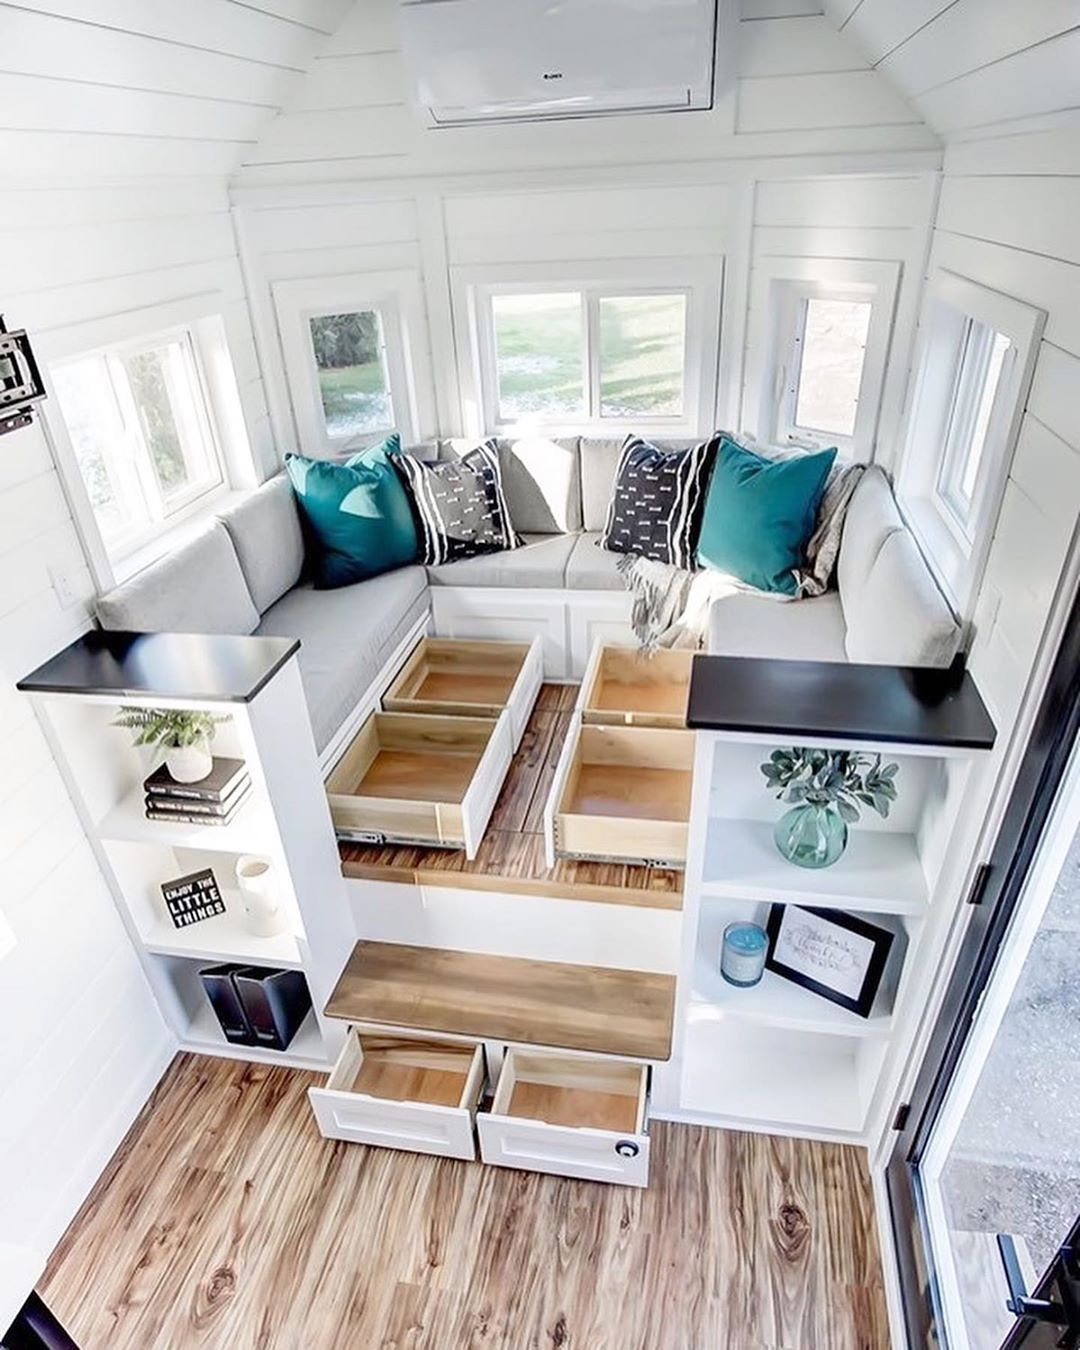 Tiny Homes On Instagram How Awesome Are These Creative Storage